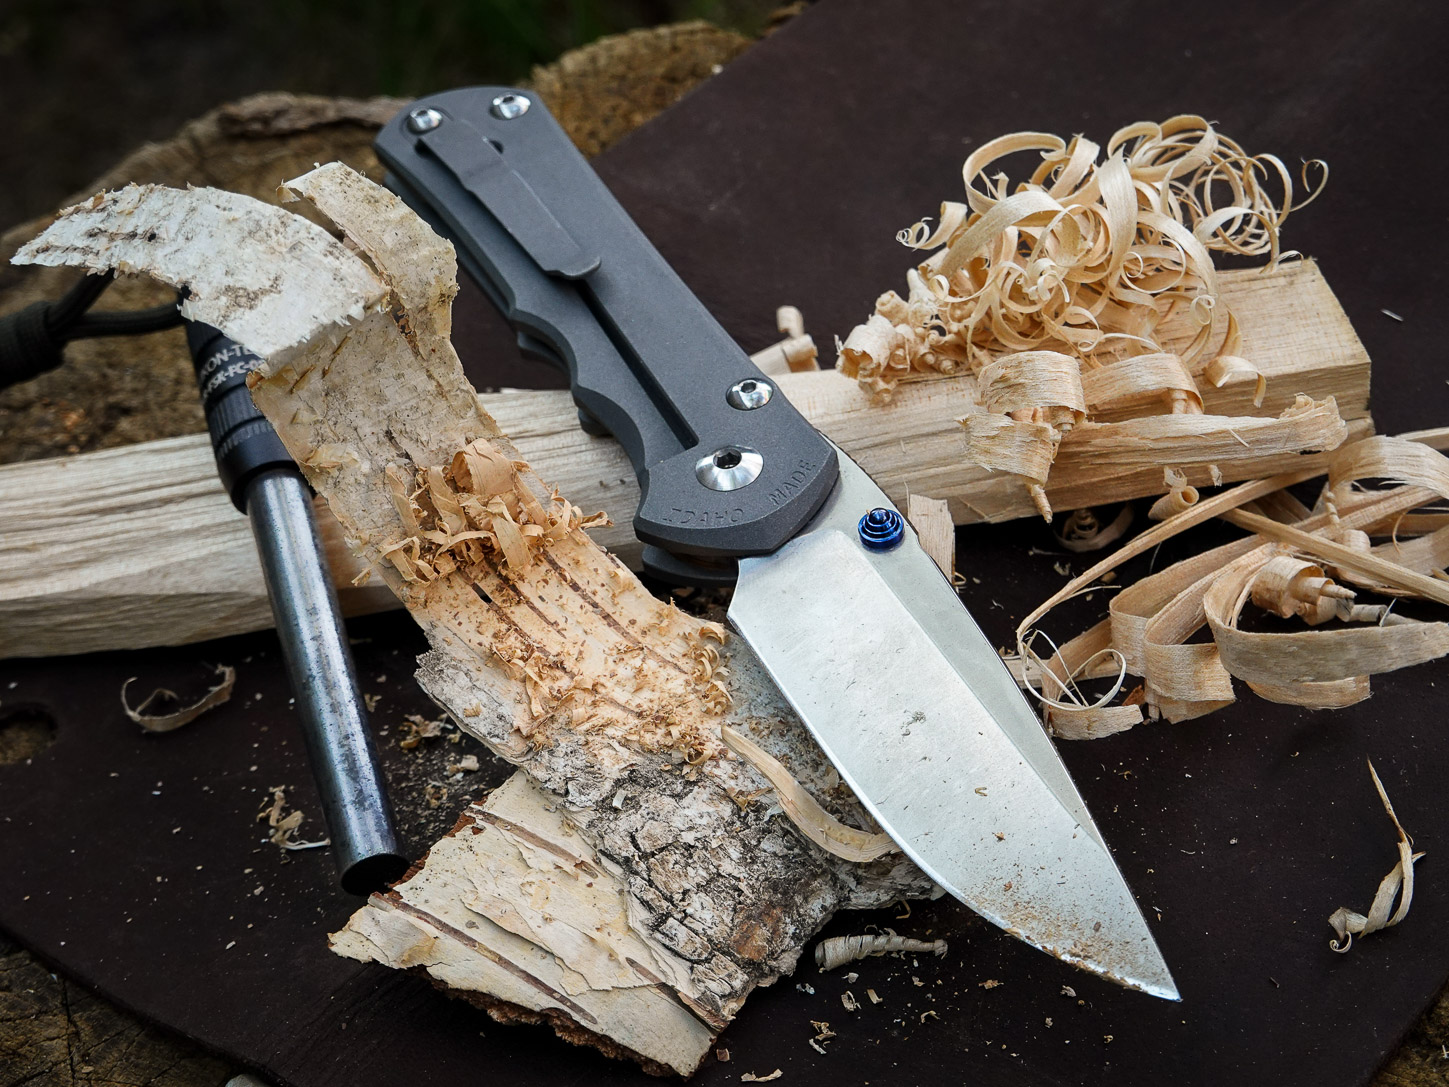 More Whittling with the Inkosi